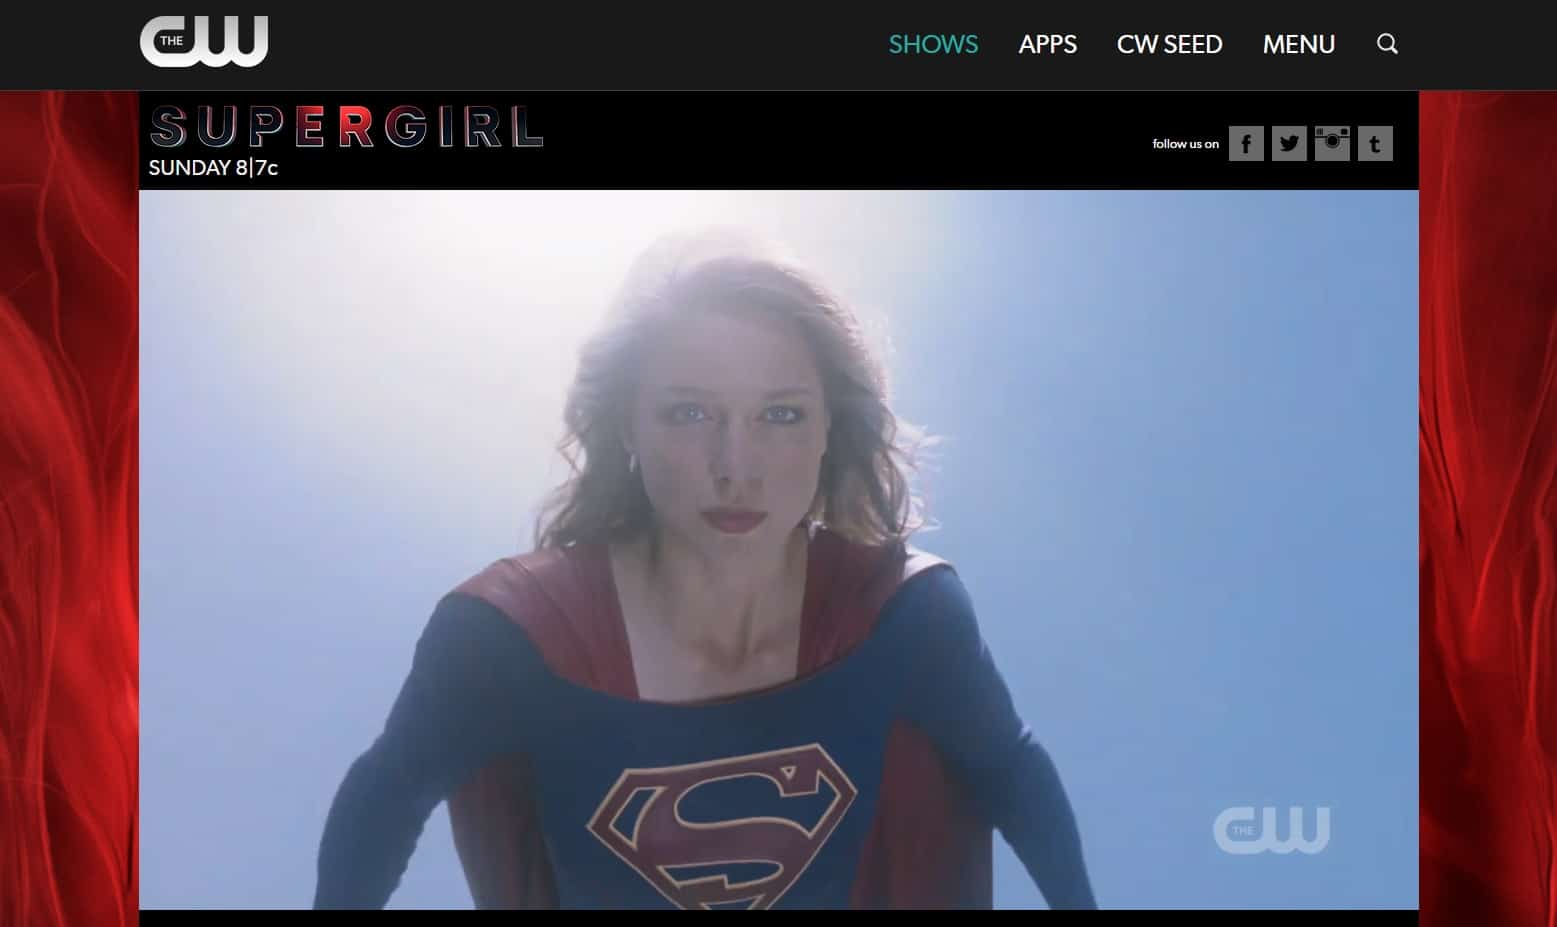 How to watch Supergirl season 4 online